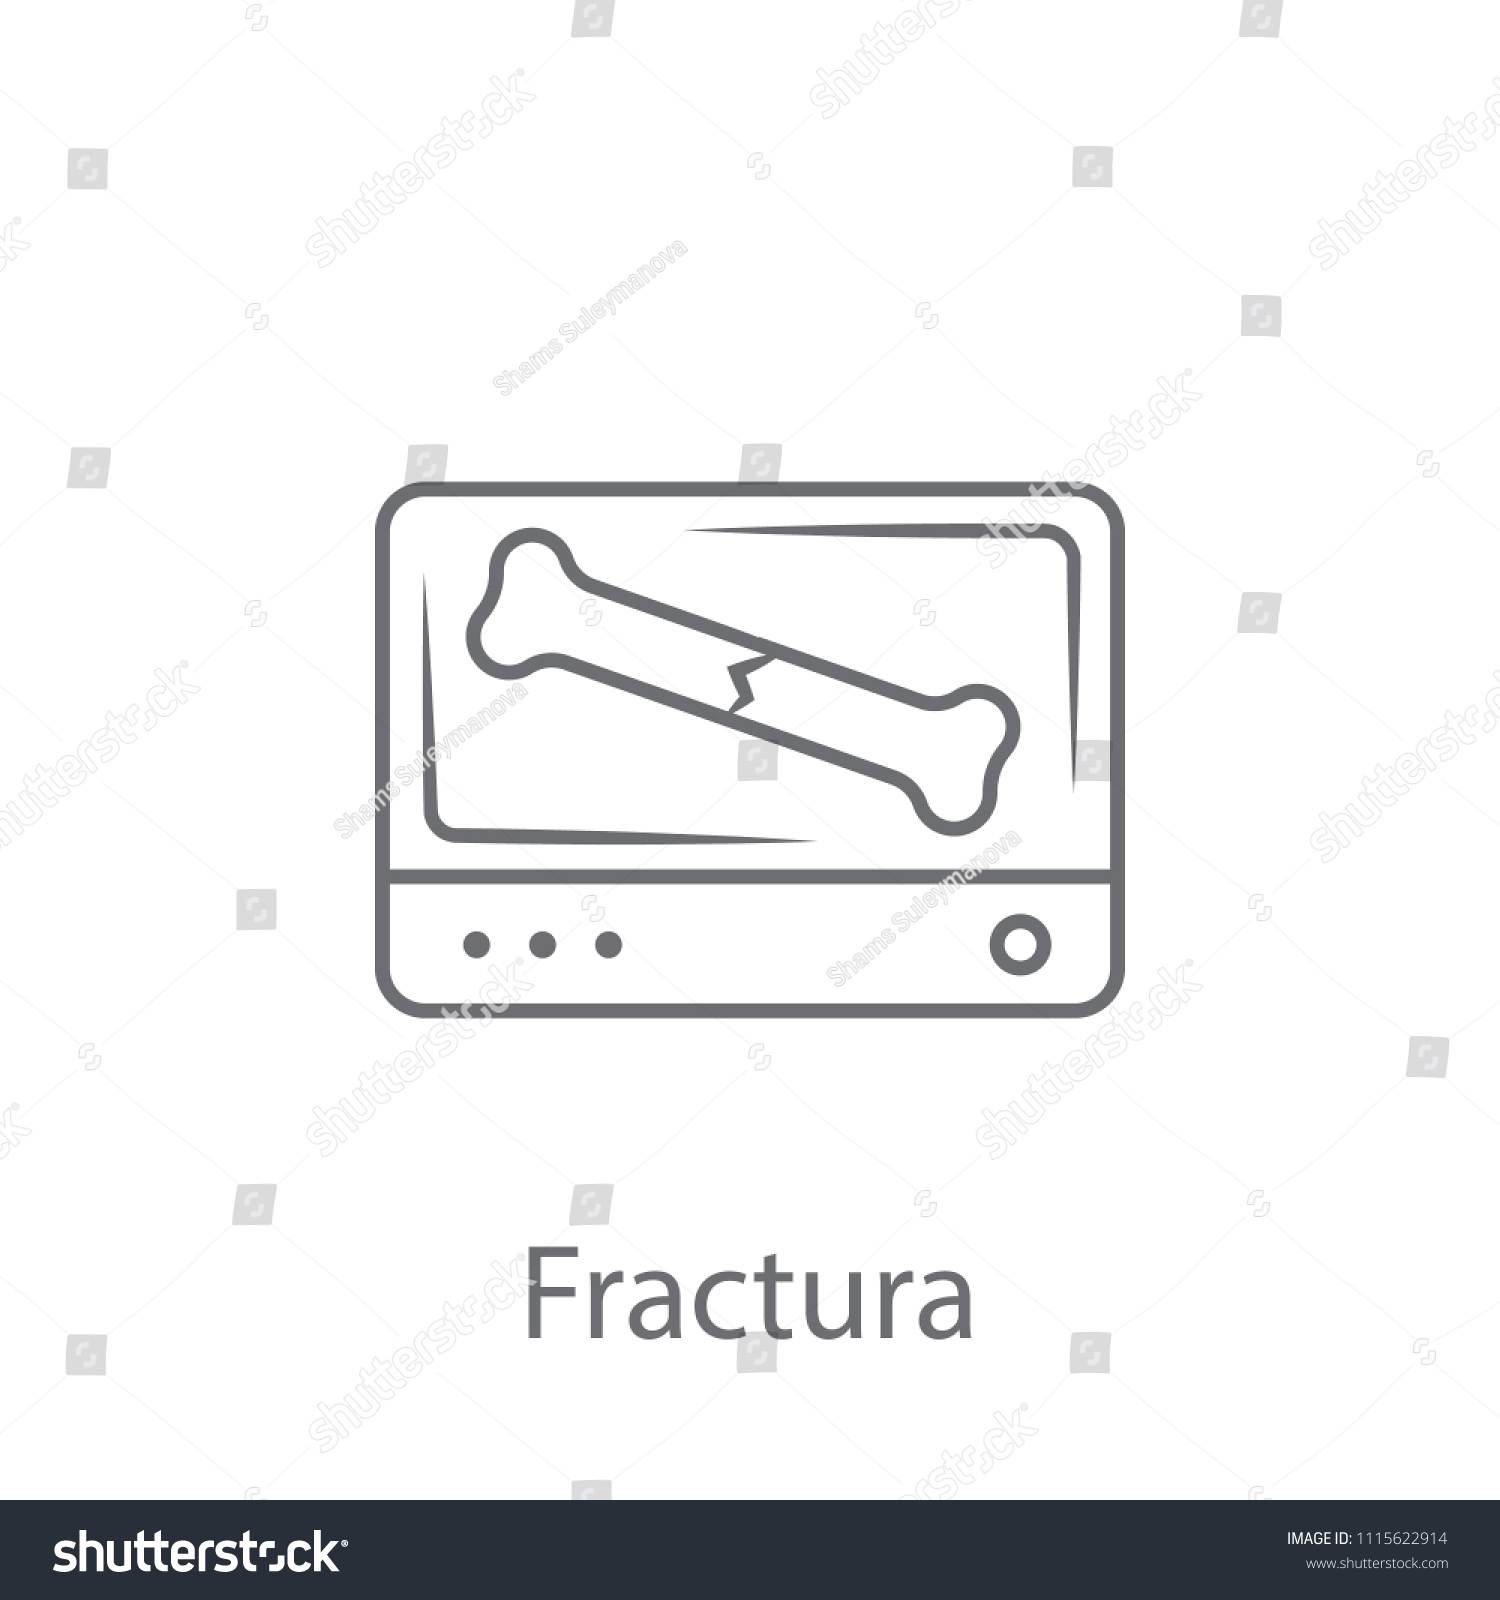 Fracture Icon Simple Element Illustration Fracture Stock Vector